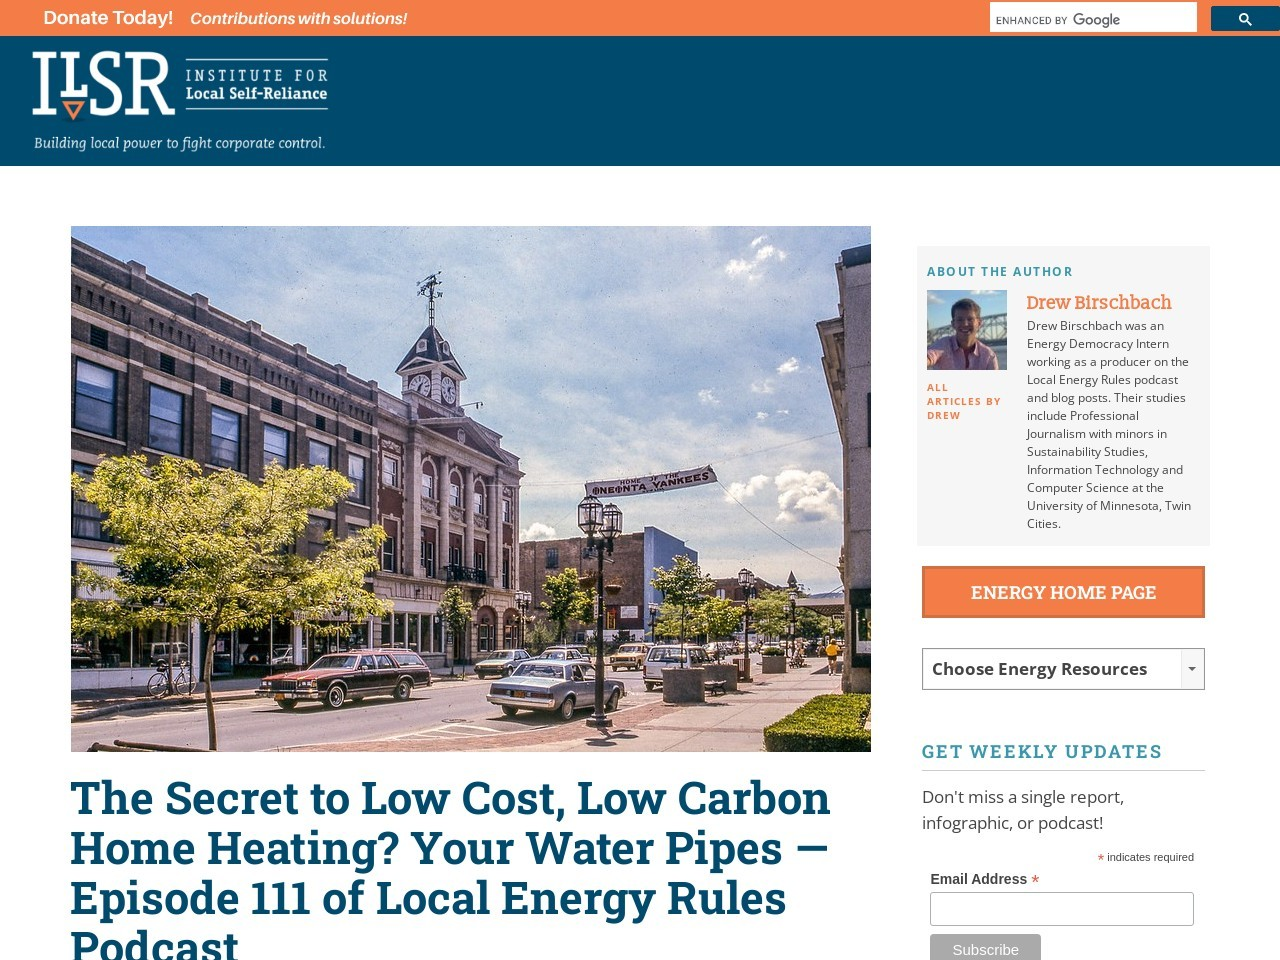 The Secret to Low Cost, Low Carbon Home Heating? Your Water Pipes — Episode 111 of Local Energy Rules Podcast